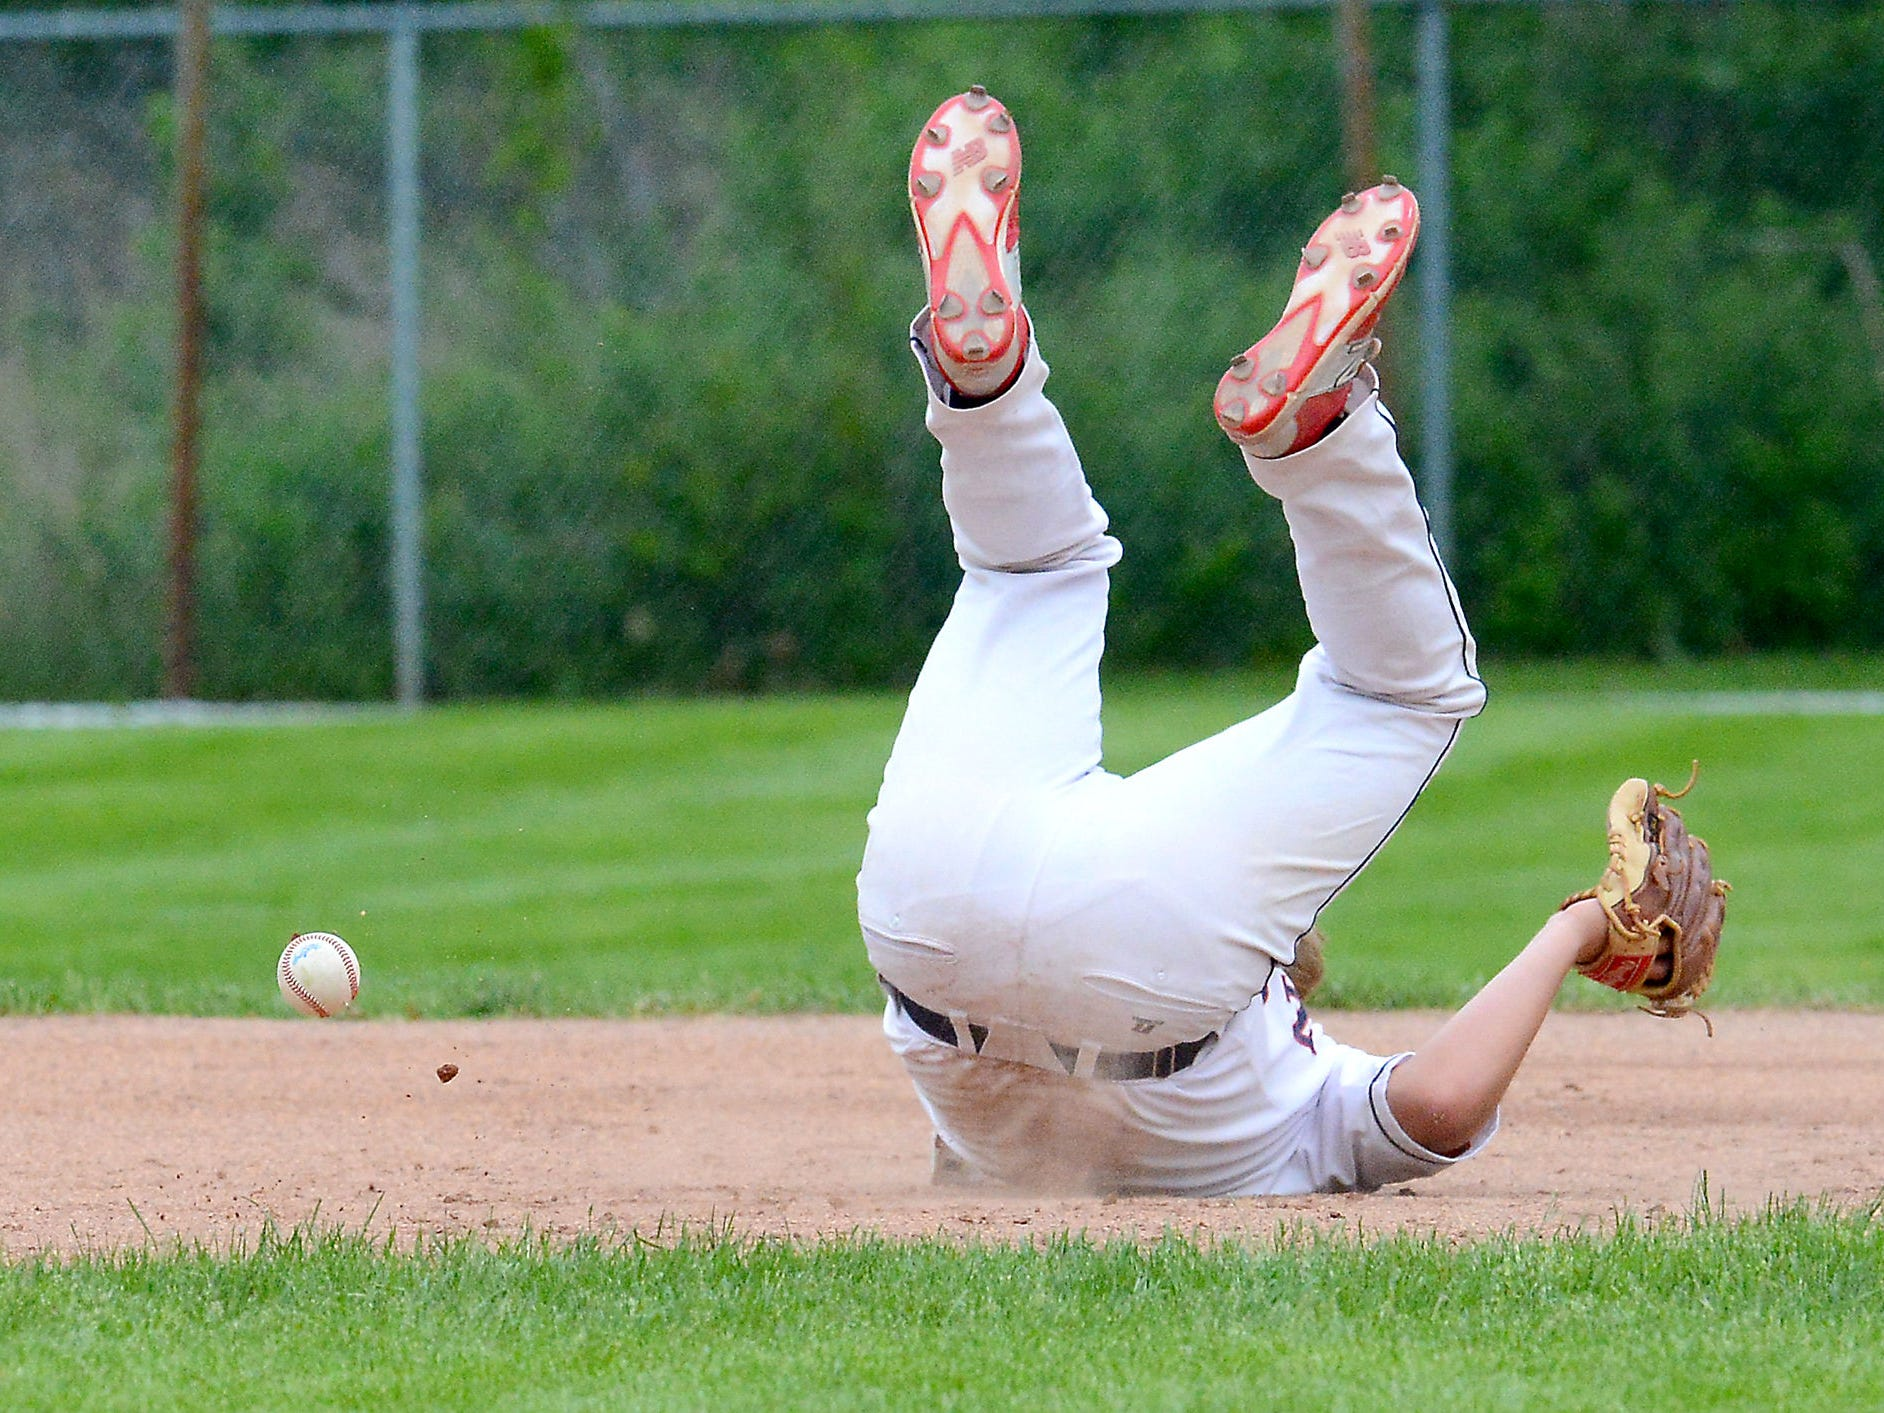 Mason third baseman Conor Whipple (9) is on the ground after being hit in the face by a ground ball Wednesday during the Bulldog's 3-2 Diamond Classic victory over Portland. Whipple would leave the game.